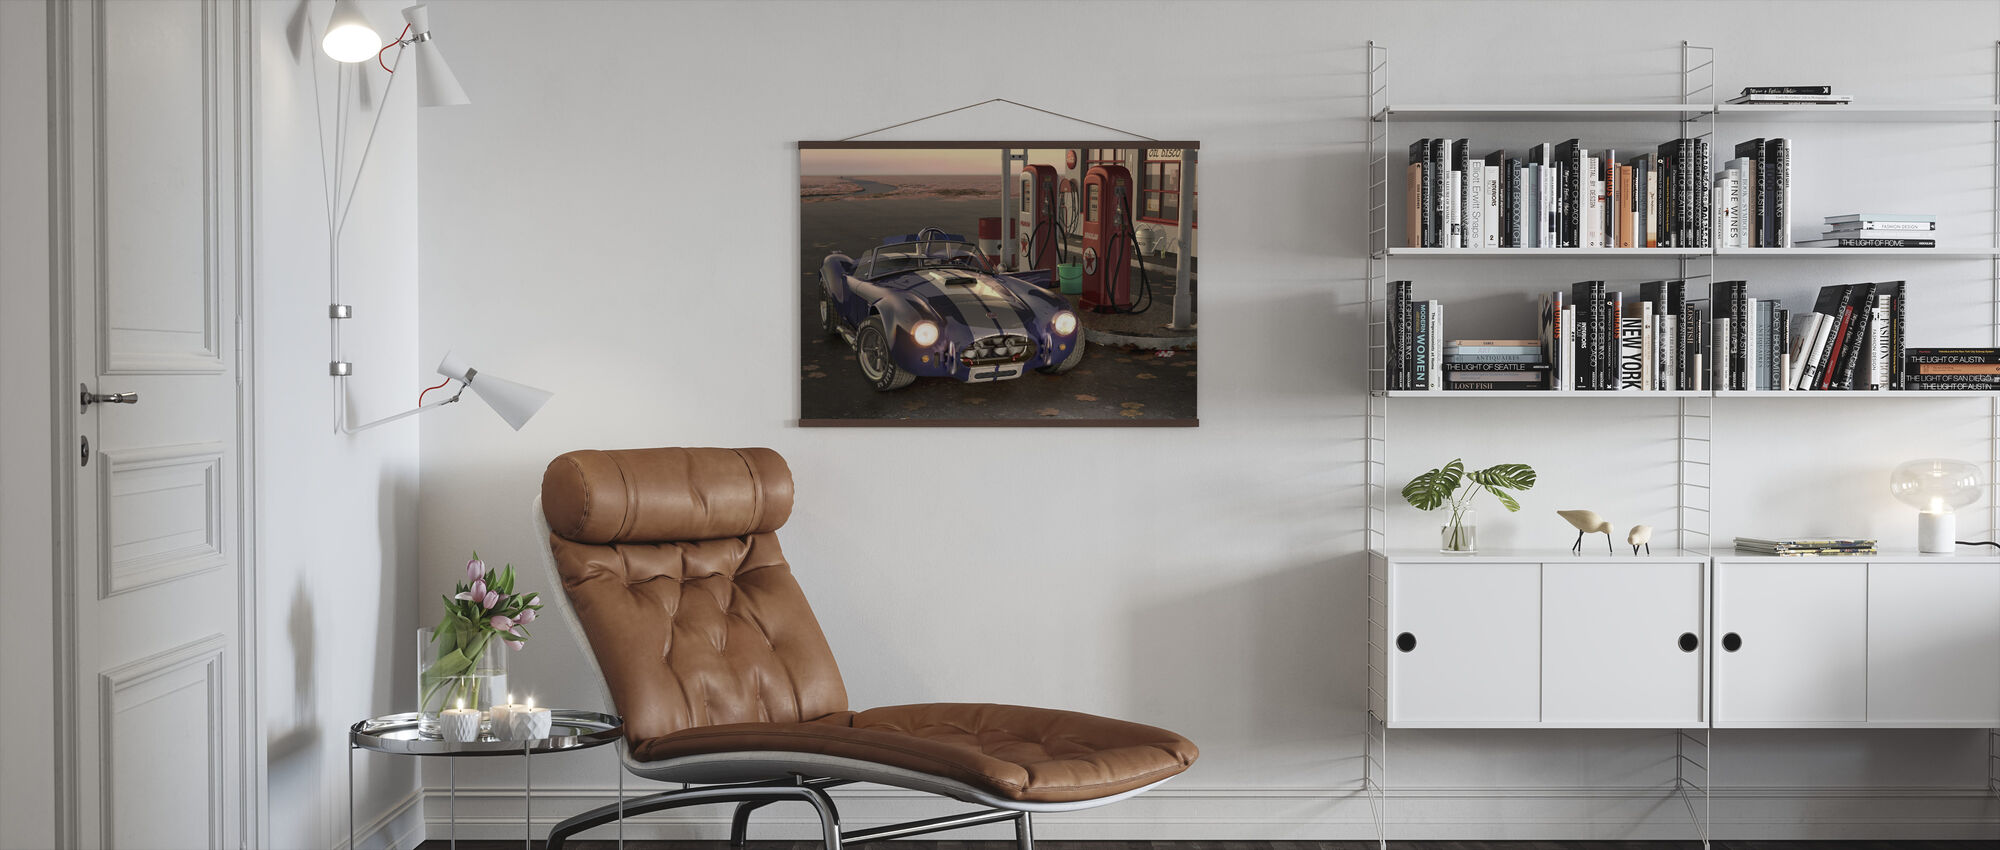 Gas Stop - Poster - Living Room